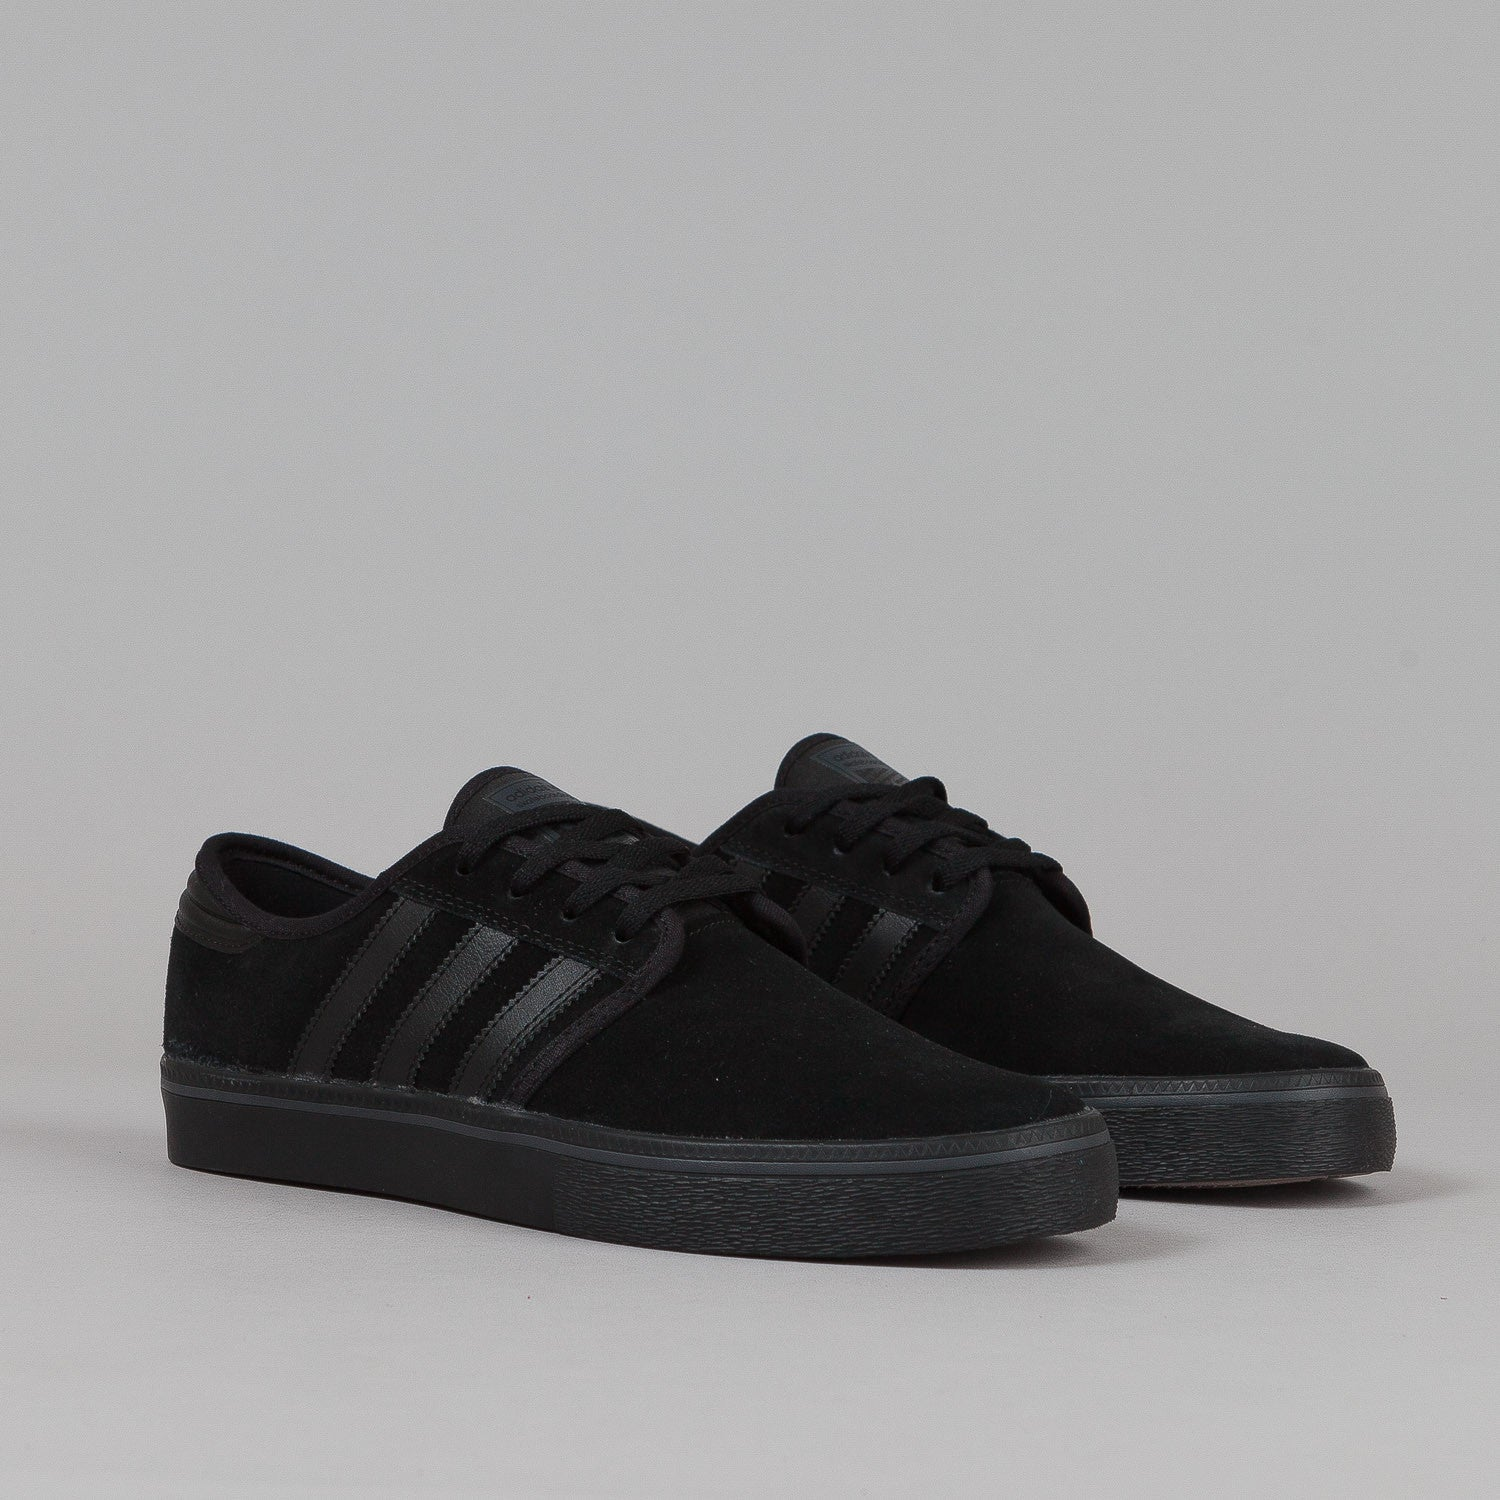 Adidas Seeley Adv Shoes - Core Black / Core Black